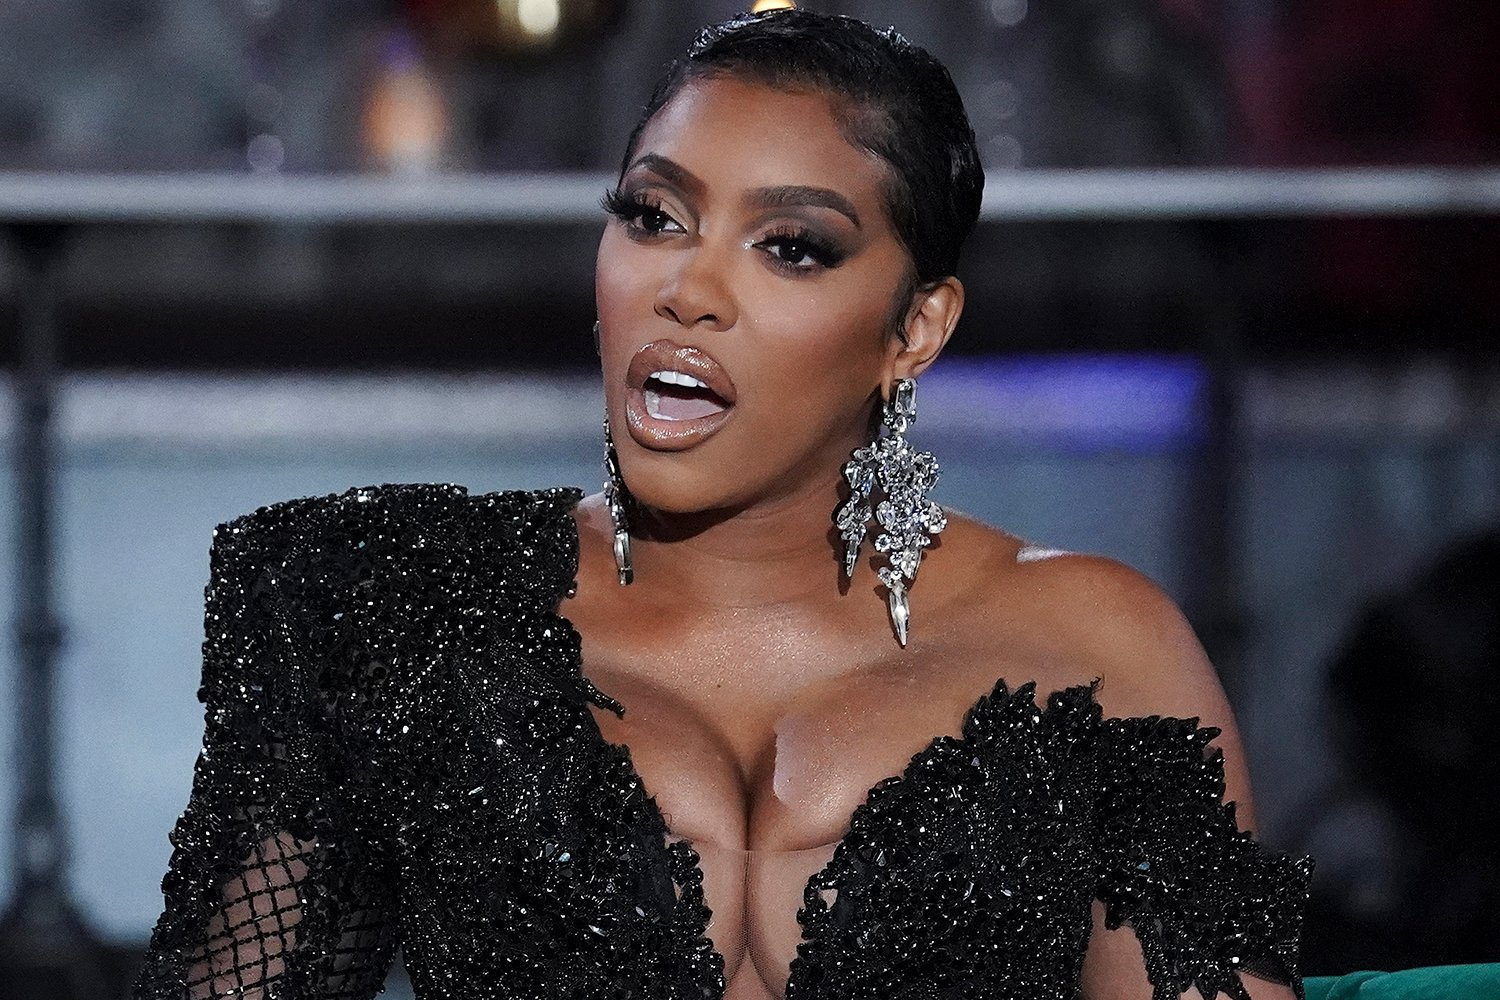 Porsha Williams Says She Is Blessed And Highly Favored